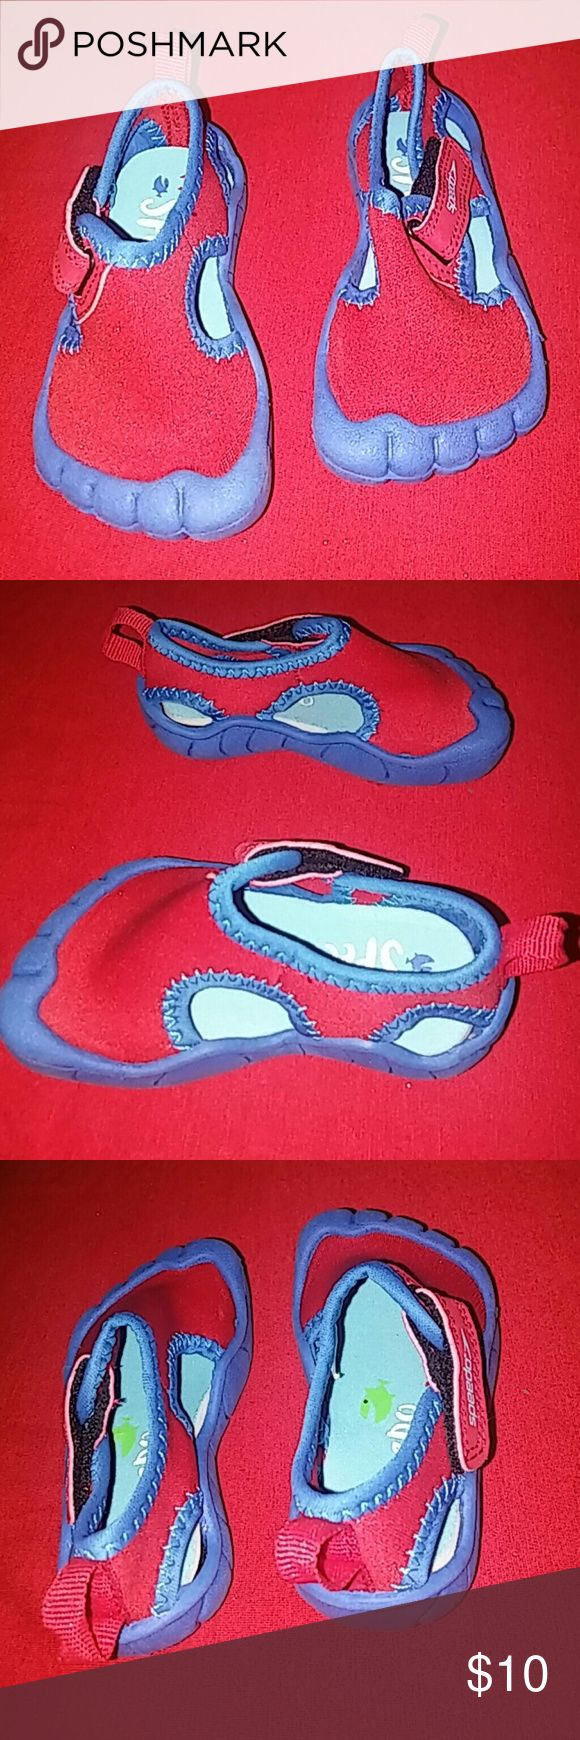 SPEEDO water shoes size S (5/6) red n blue SPEEDO size S (5/6) boys red n blue water shoes for hours of fun without blistered feet or slipping or falling. In good gently used/like new condition. SMOKE FREE HOME Speedo Shoes